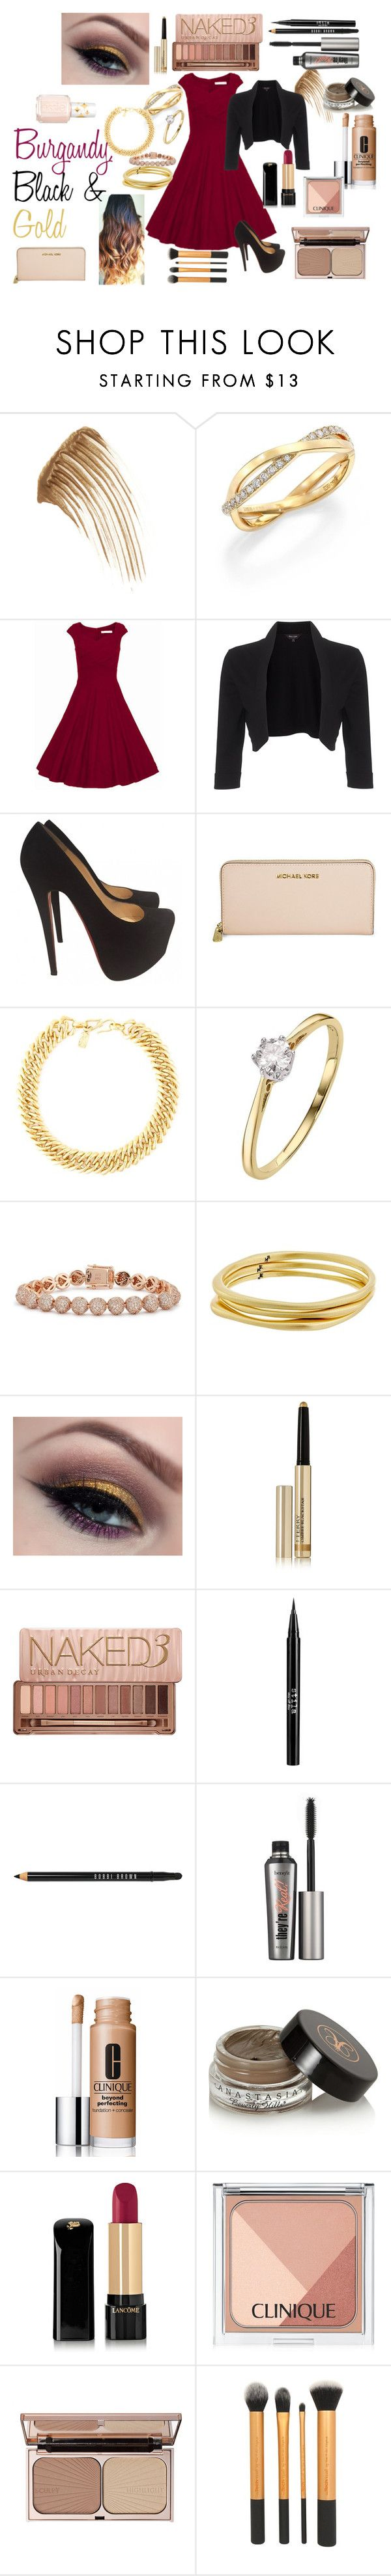 """""""Burgandy, Black & Gold"""" by treasurechestdesigns on Polyvore featuring Anastasia Beverly Hills, De Beers, Phase Eight, Christian Louboutin, Michael Kors, Yves Saint Laurent, Eddie Borgo, Karen Kane, By Terry and Urban Decay"""